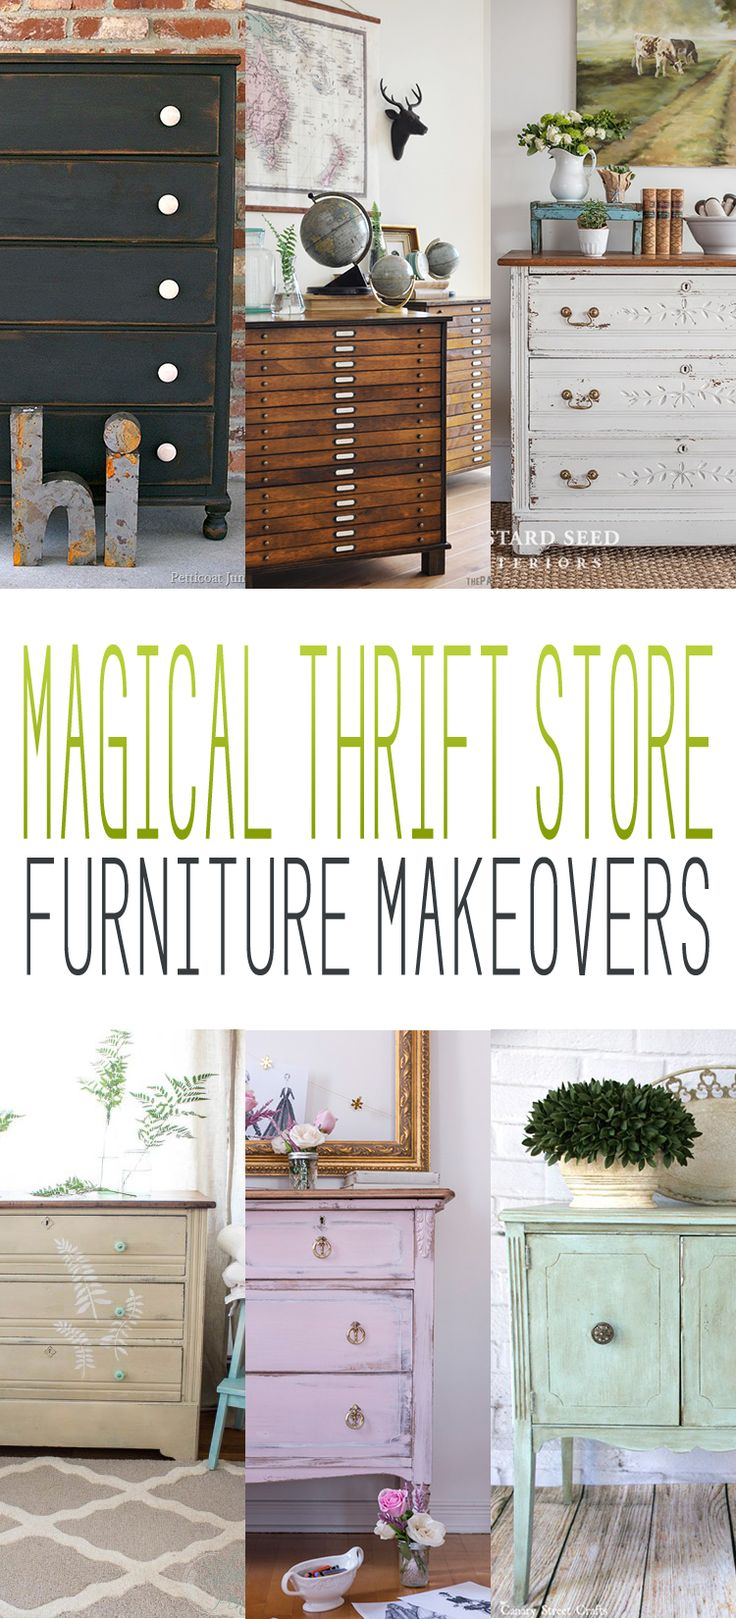 . 110 best Painting Furniture images on Pinterest